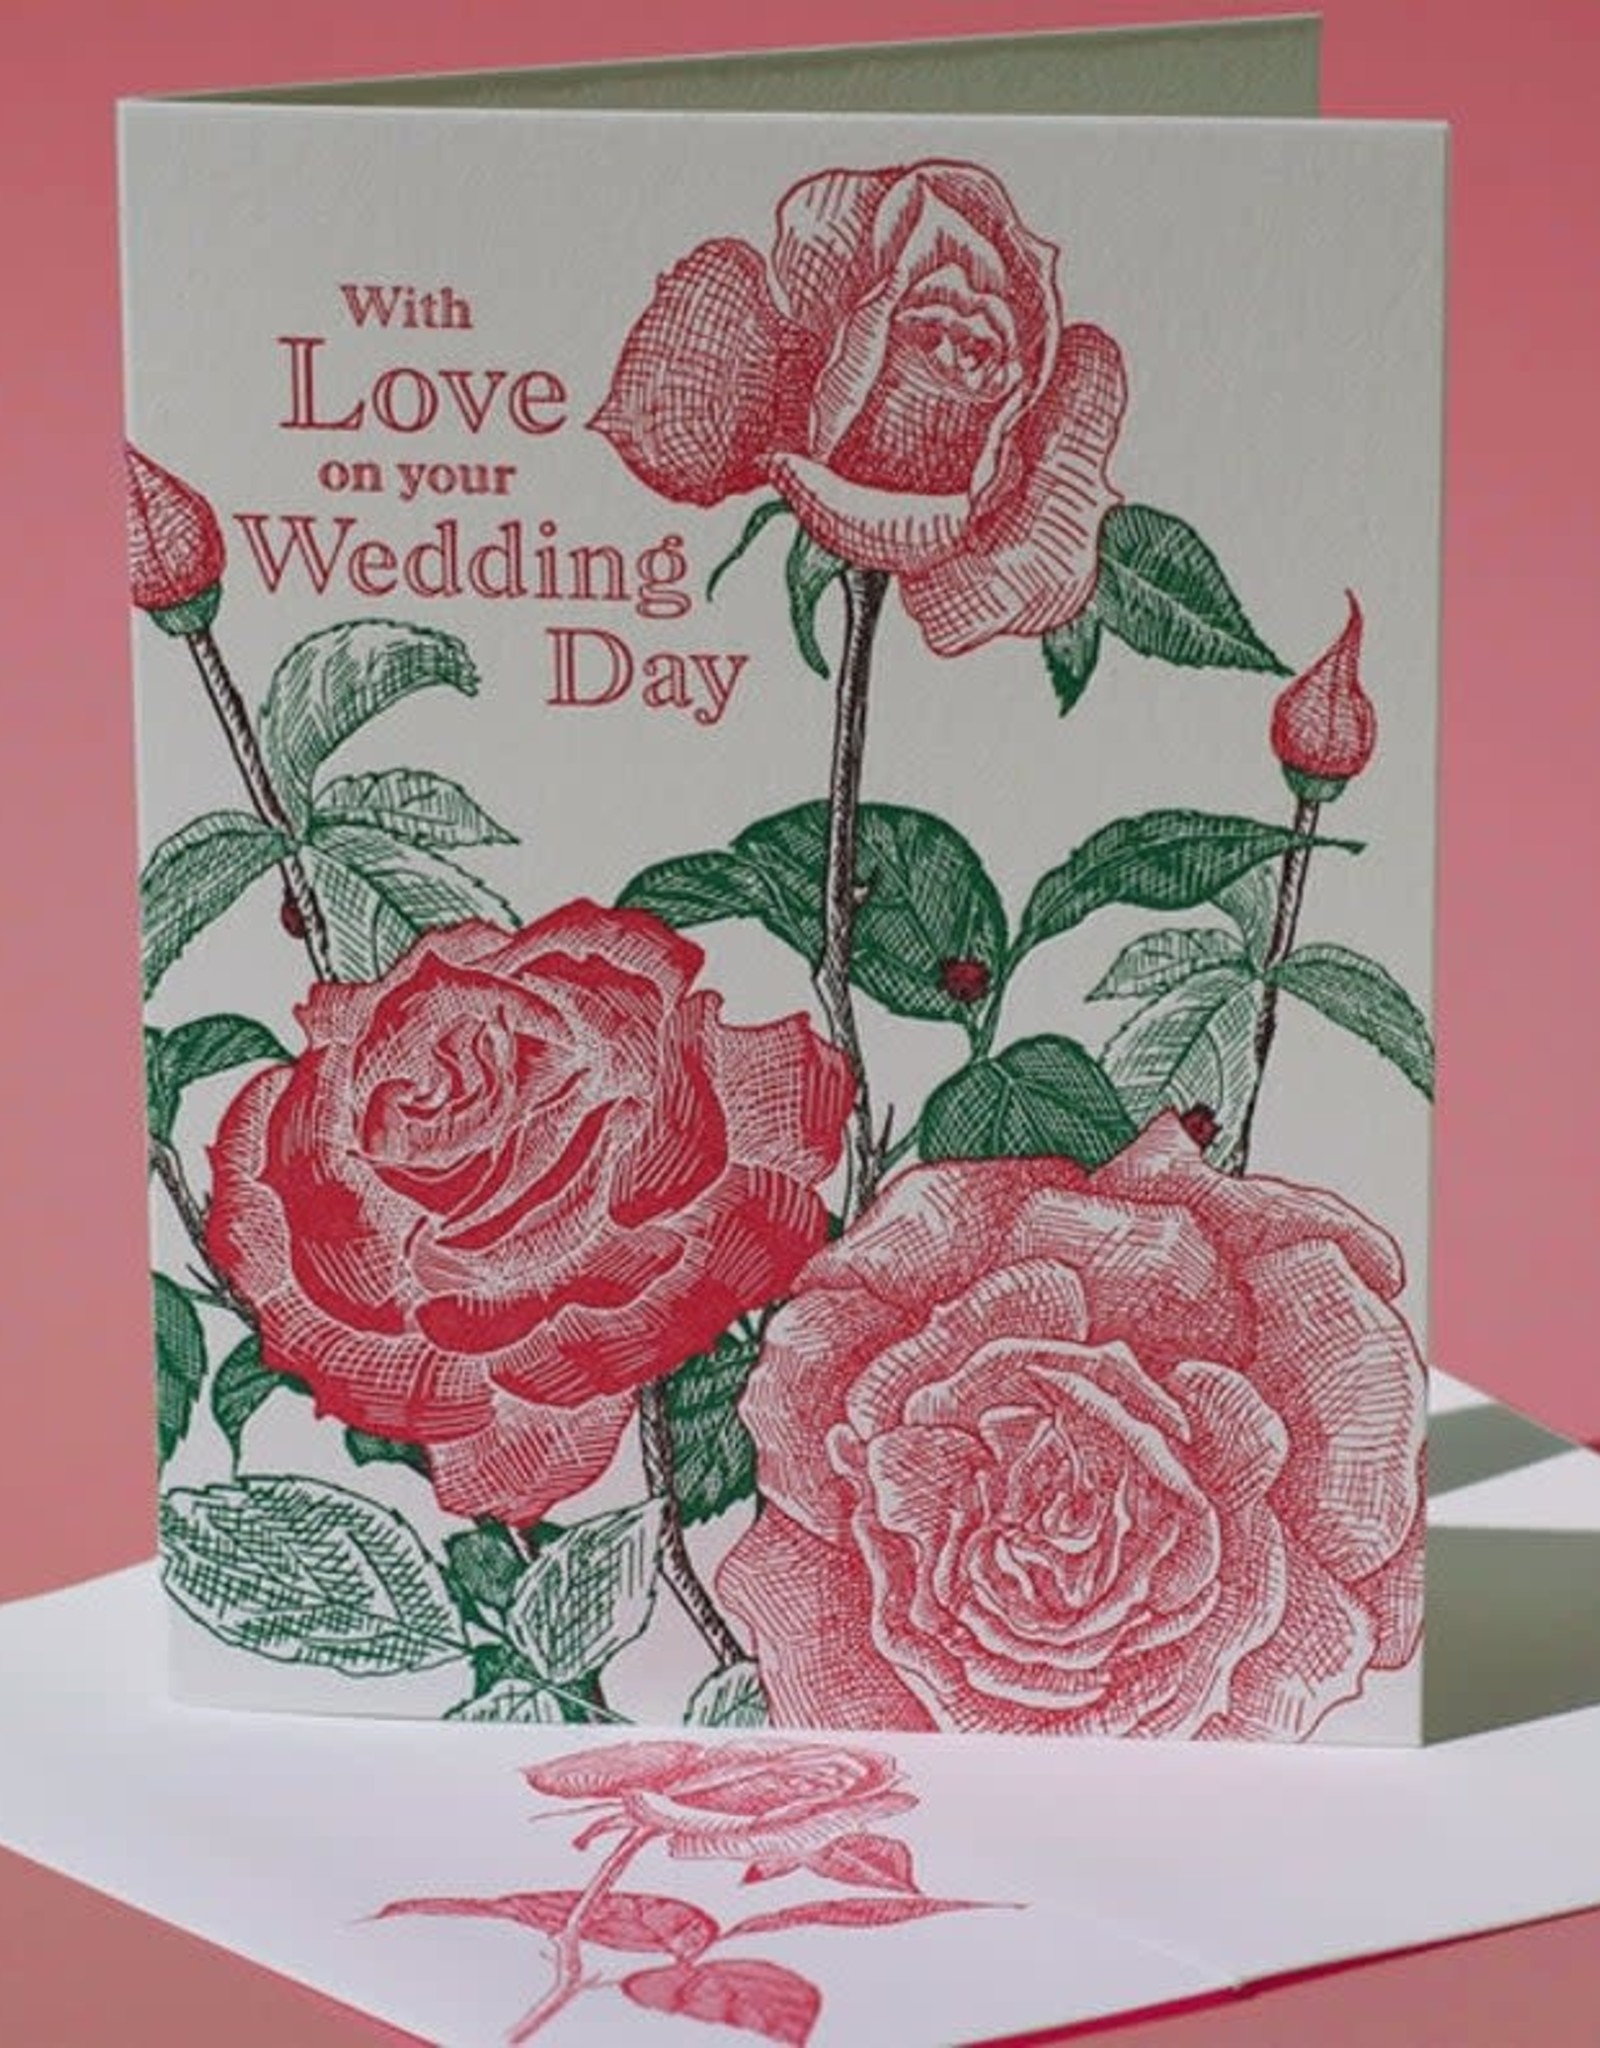 With Love on your Wedding Day (Tea Rose) Greeting Card